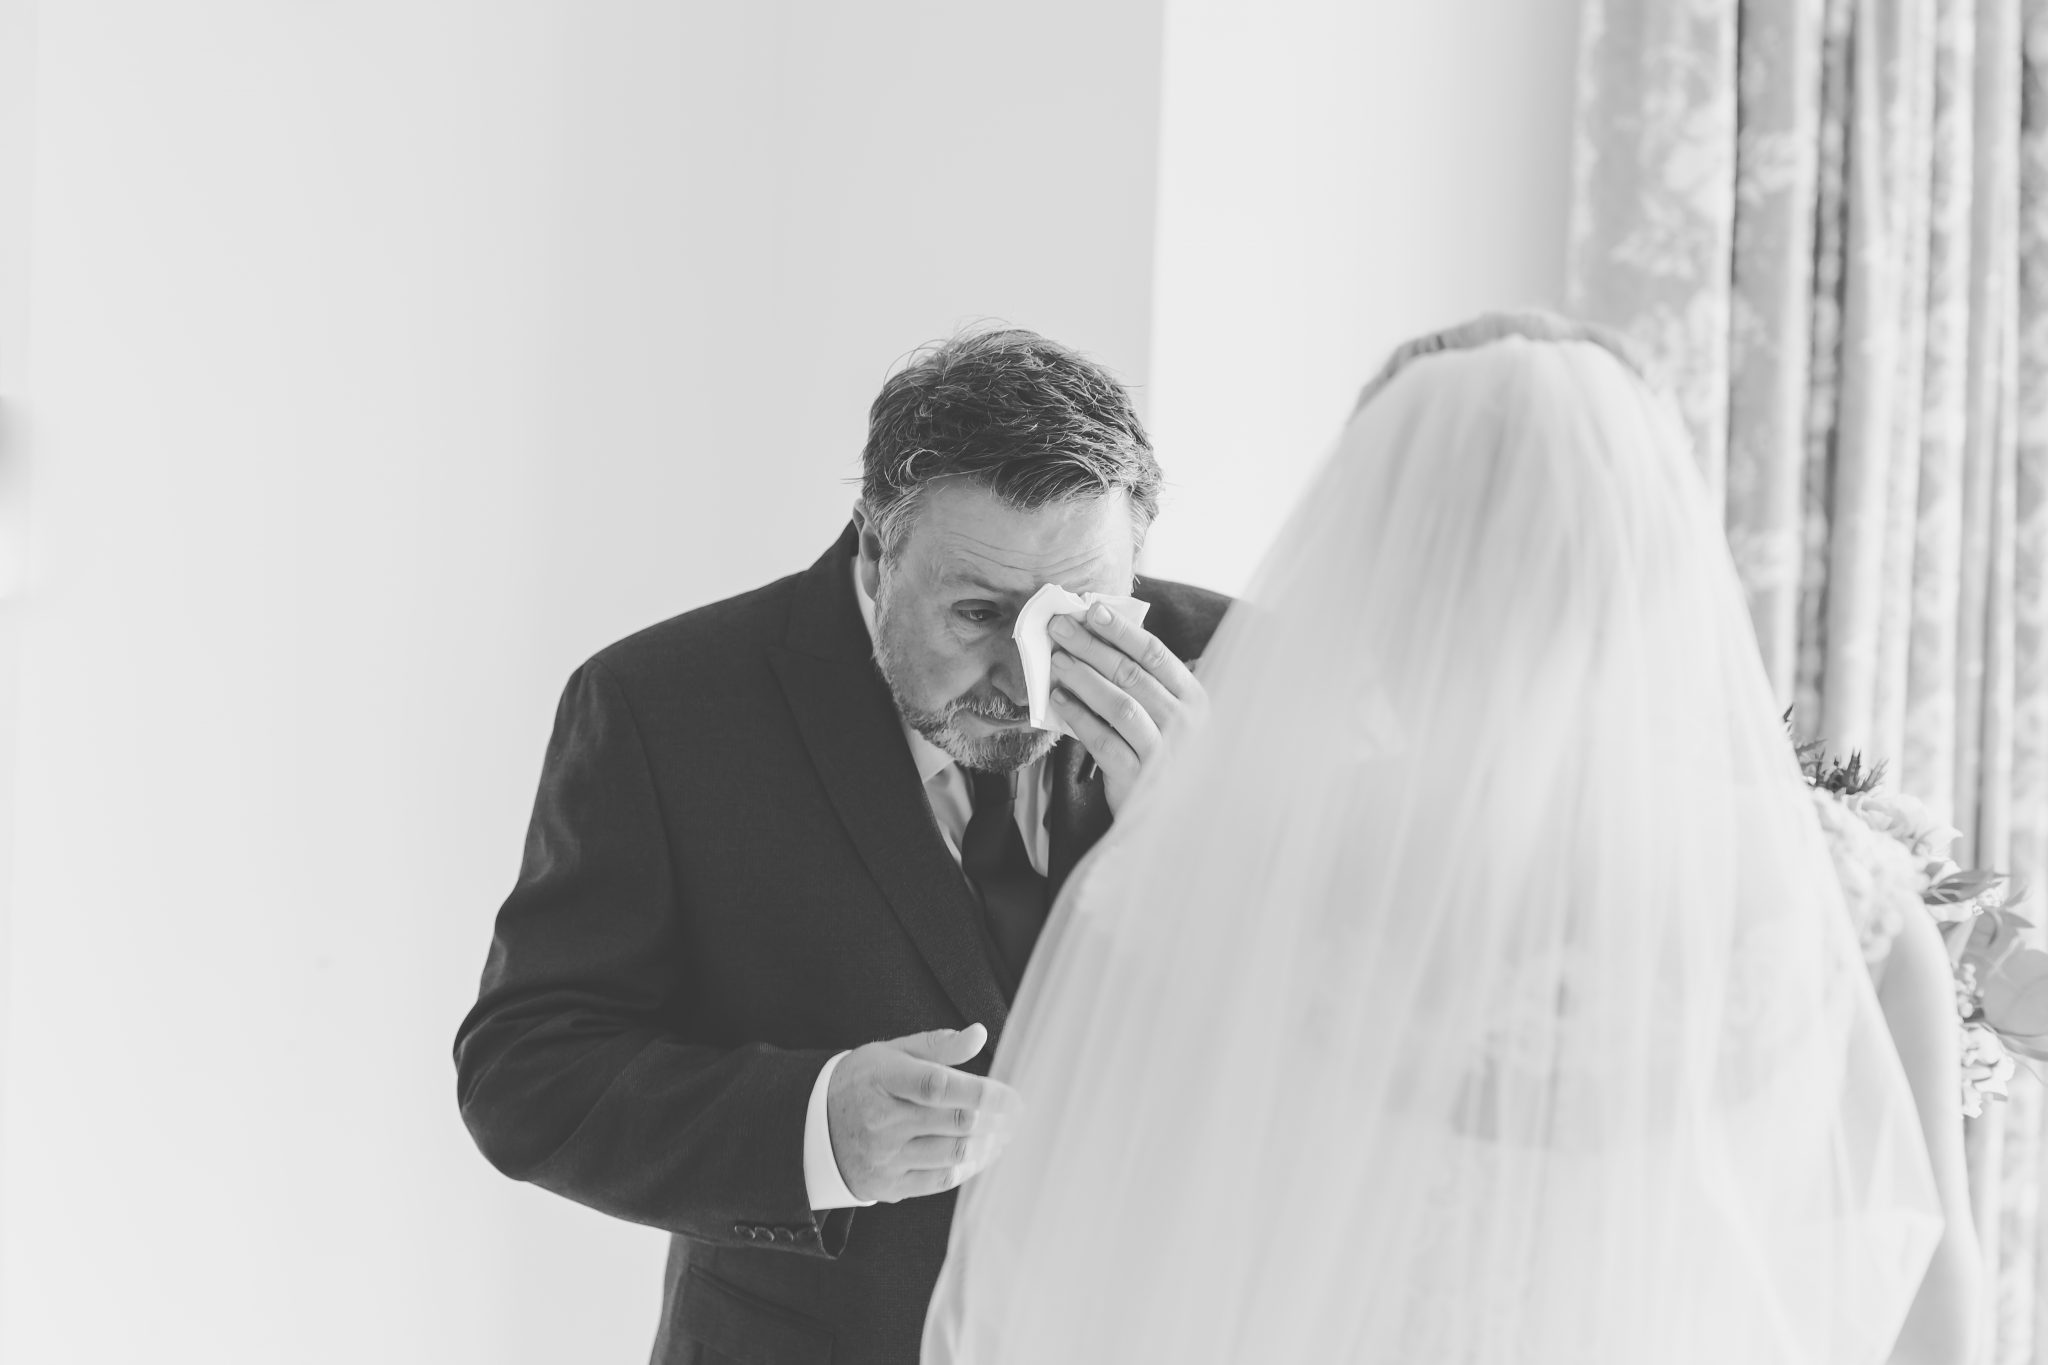 father of the bride has an emotional moment after seeing his daughter in her wedding dress